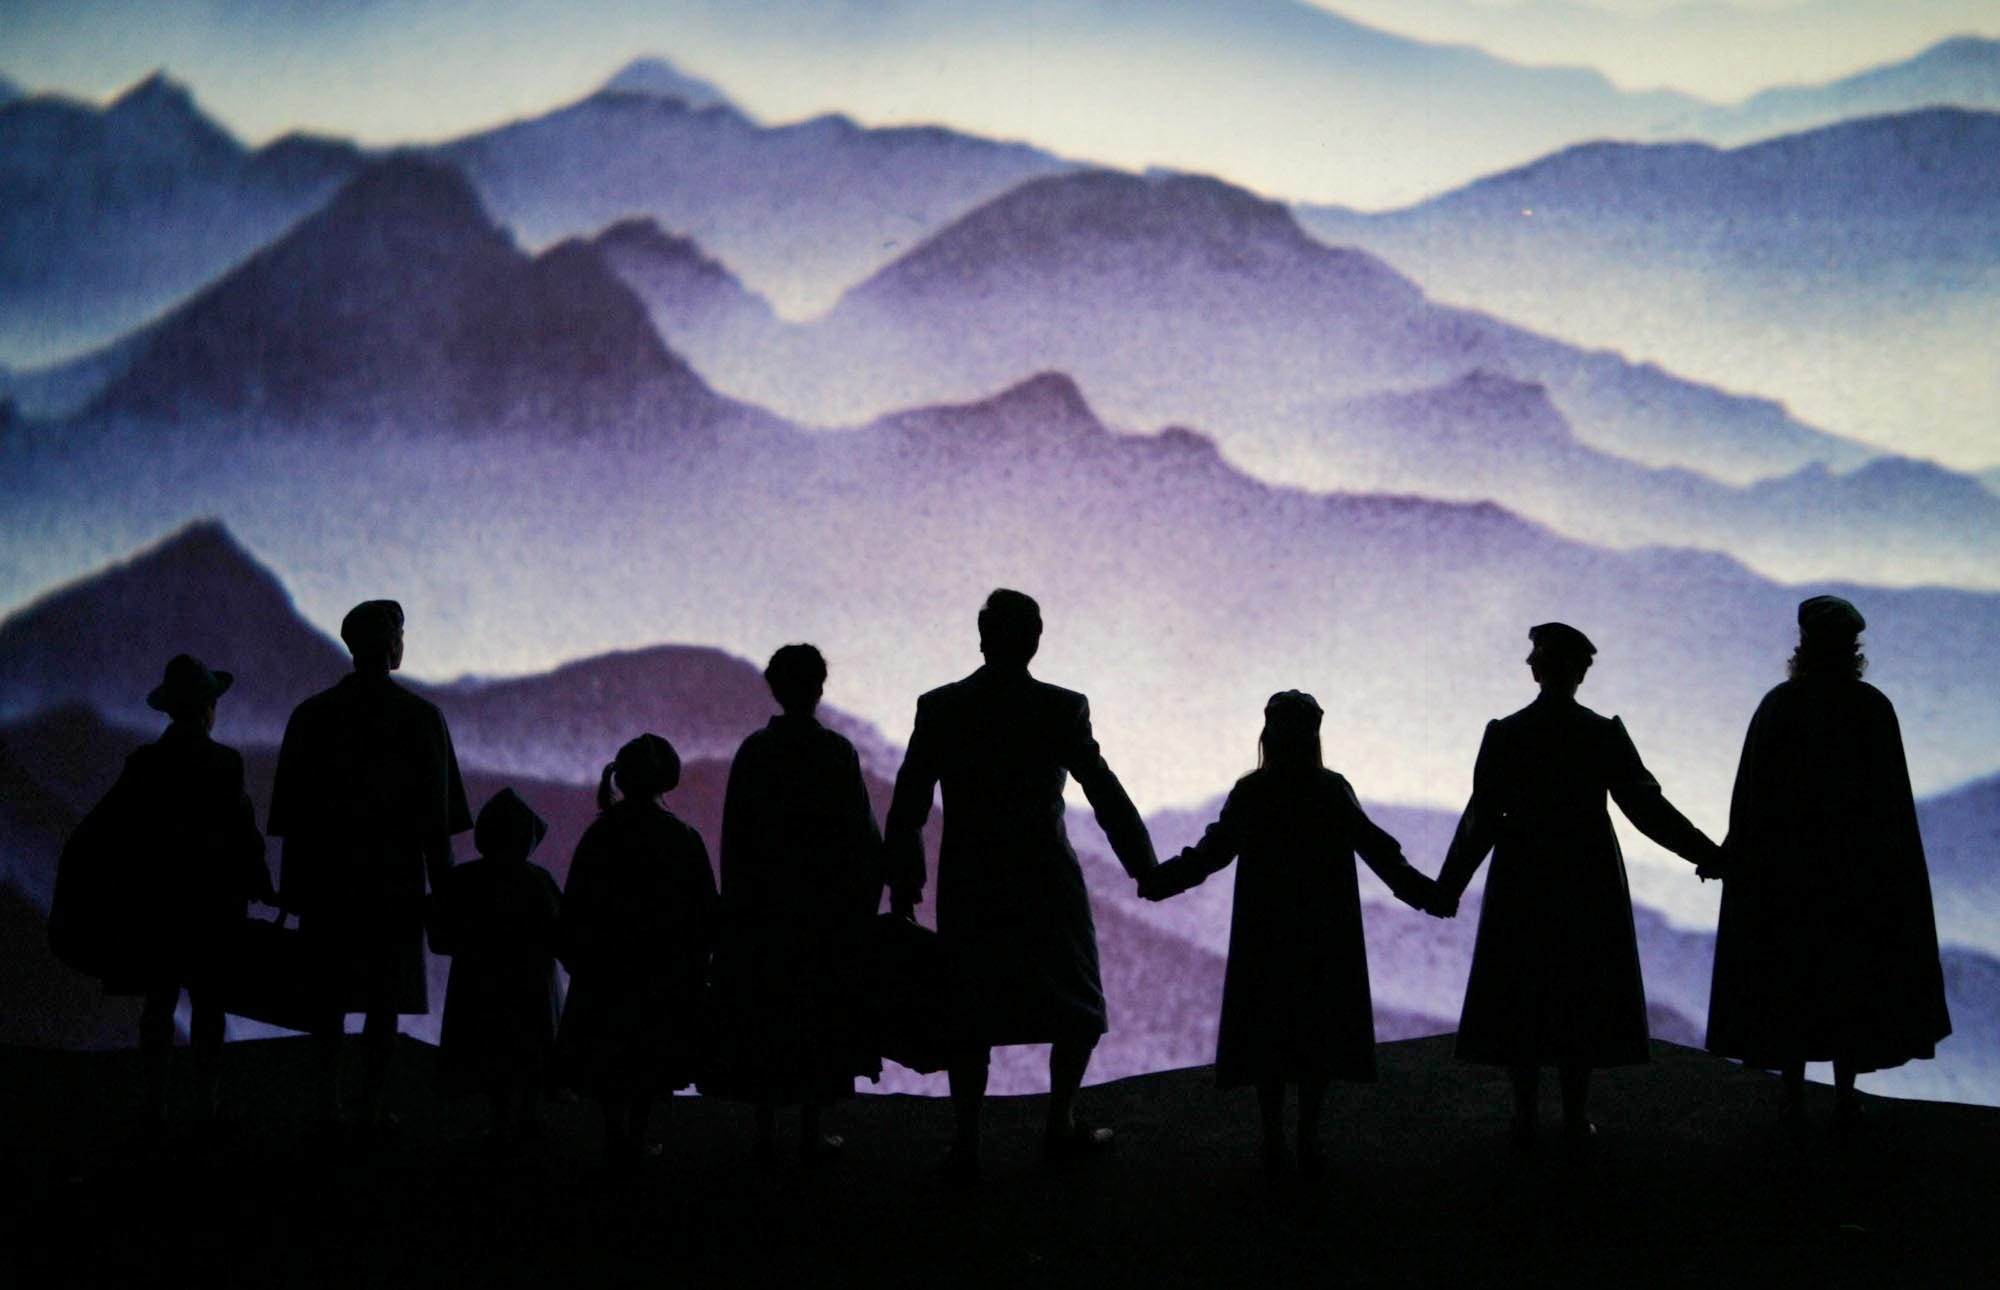 Today in History, November 16, 1959: 'The Sound of Music' debuted on Broadway